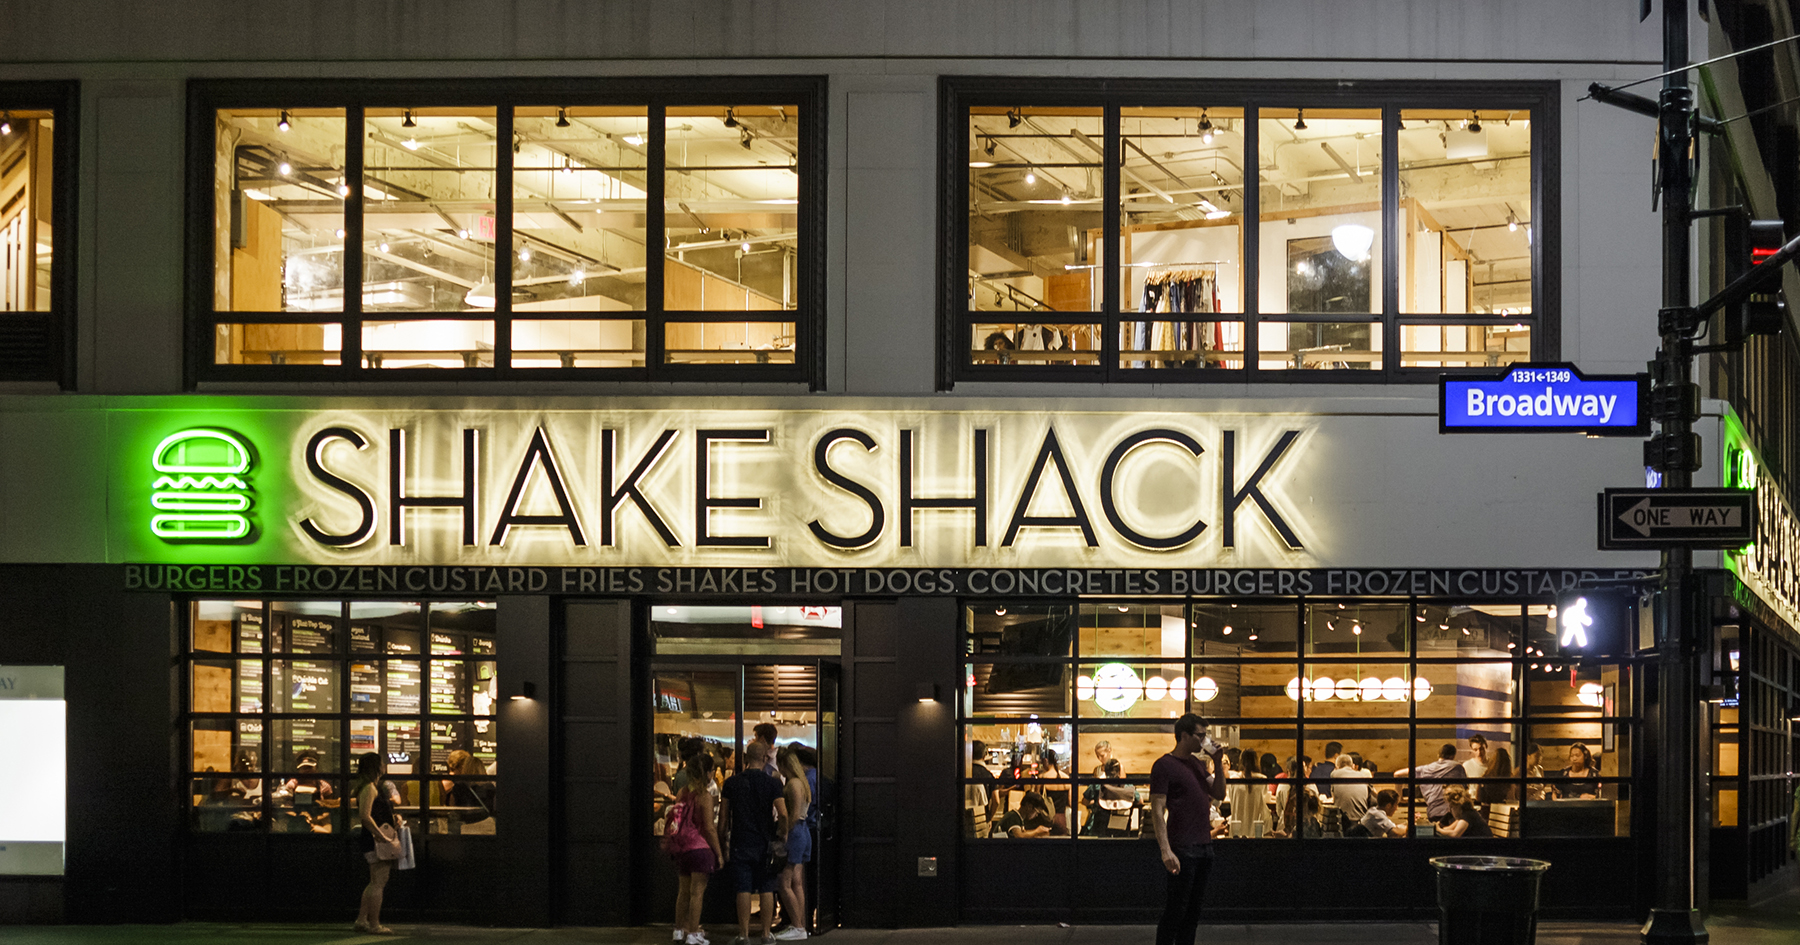 A 1st for Shake Shack: A CMO